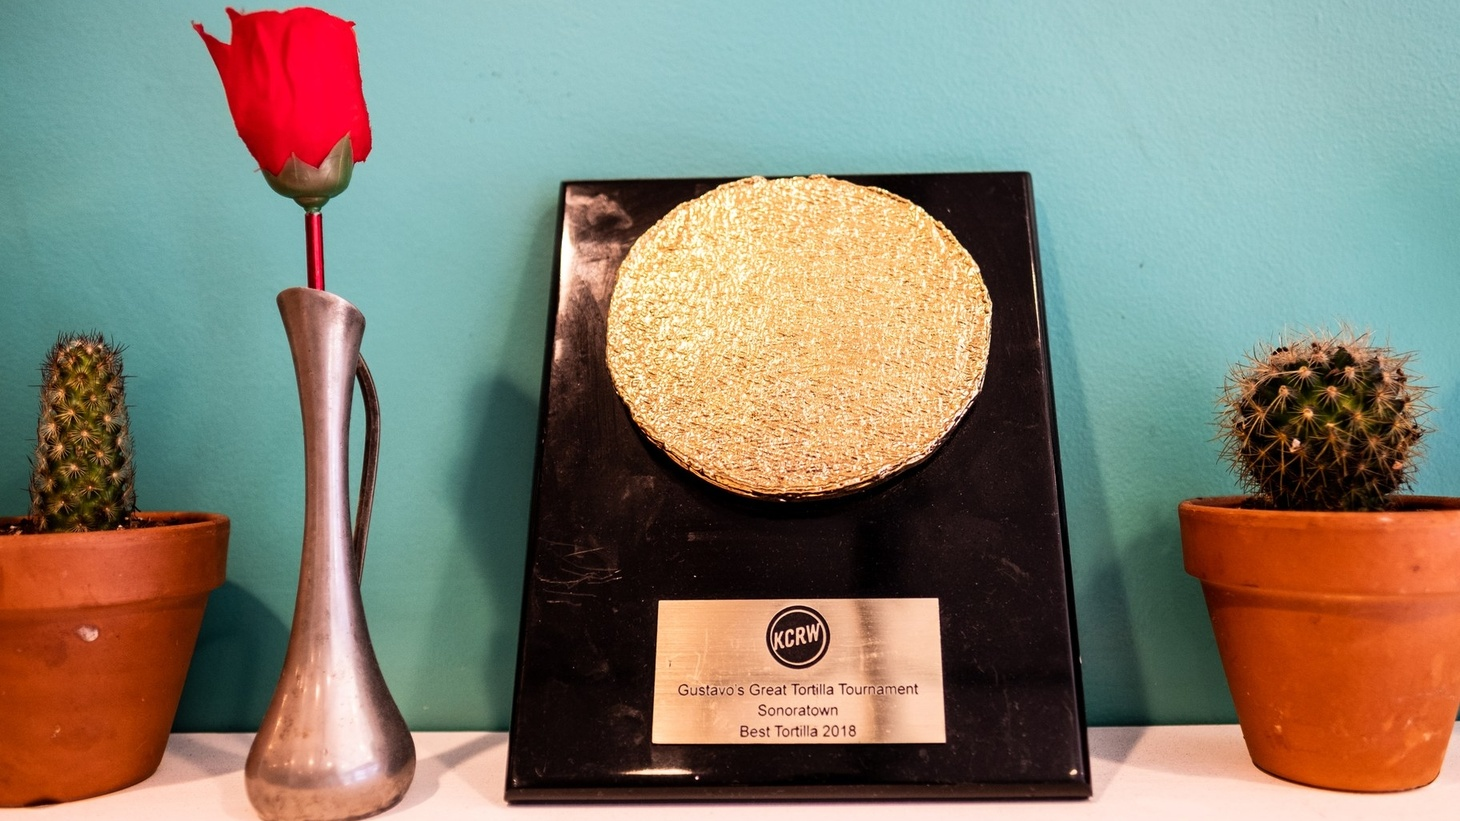 Sonoratown's 2018 trophy from the Great Tortilla Tournament.